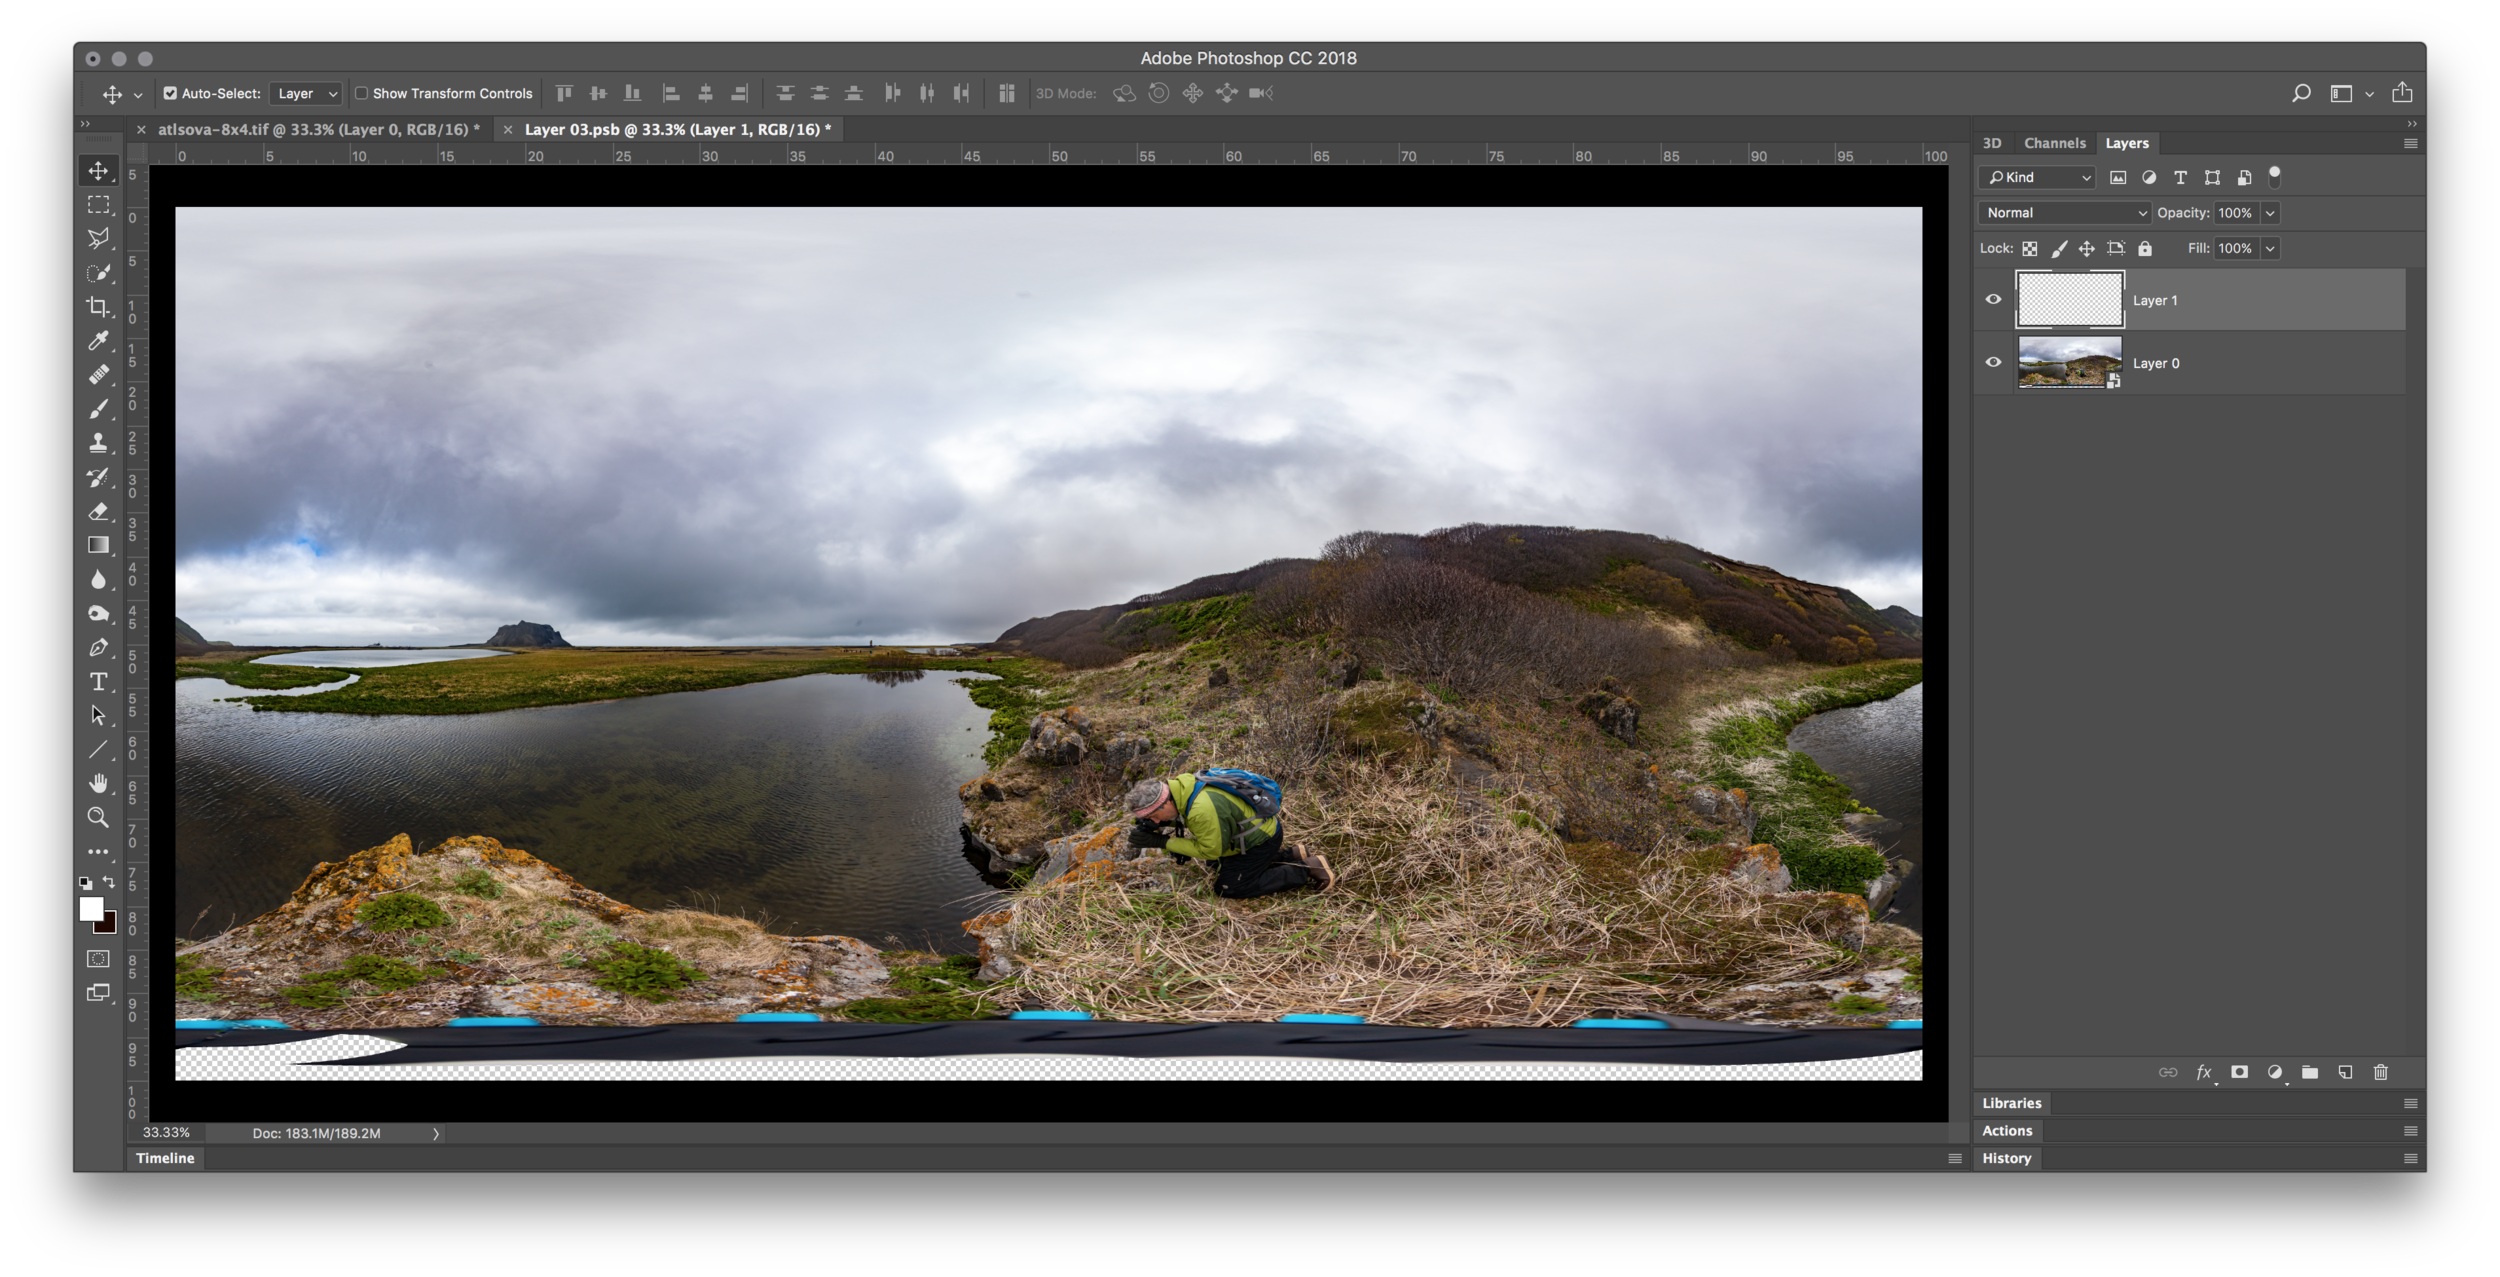 Image #3 - New layer added above the panorama layer